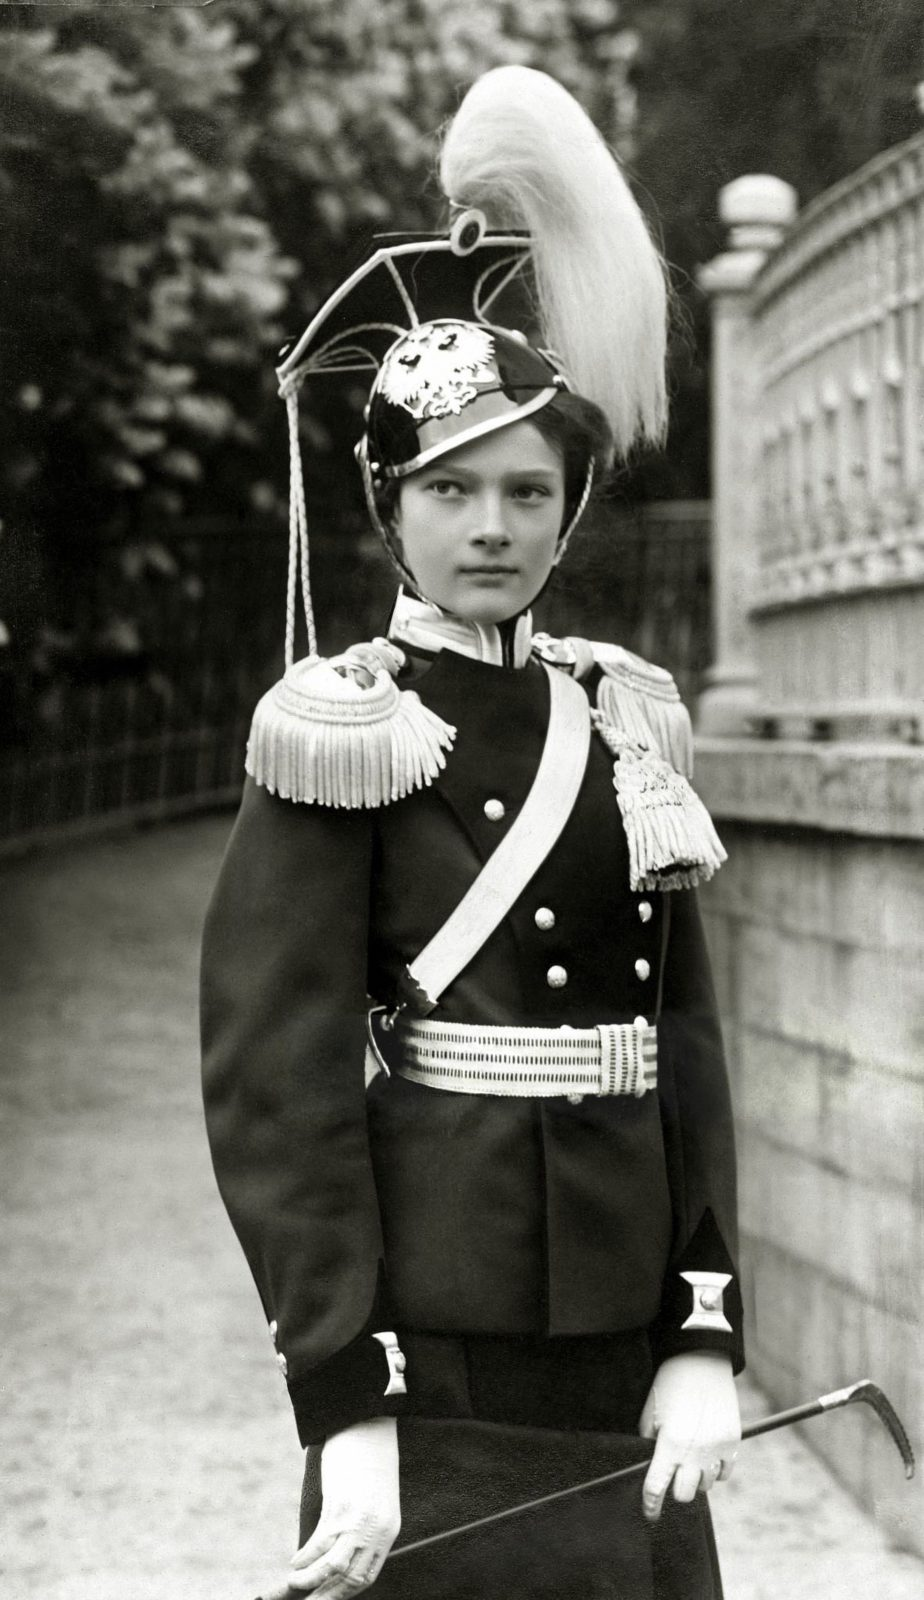 Her Imperial Highness Grand Duchess Tatiana in the uniform of the Chief of the 8th Voznesensky Ulan Regiment. 1912 year.